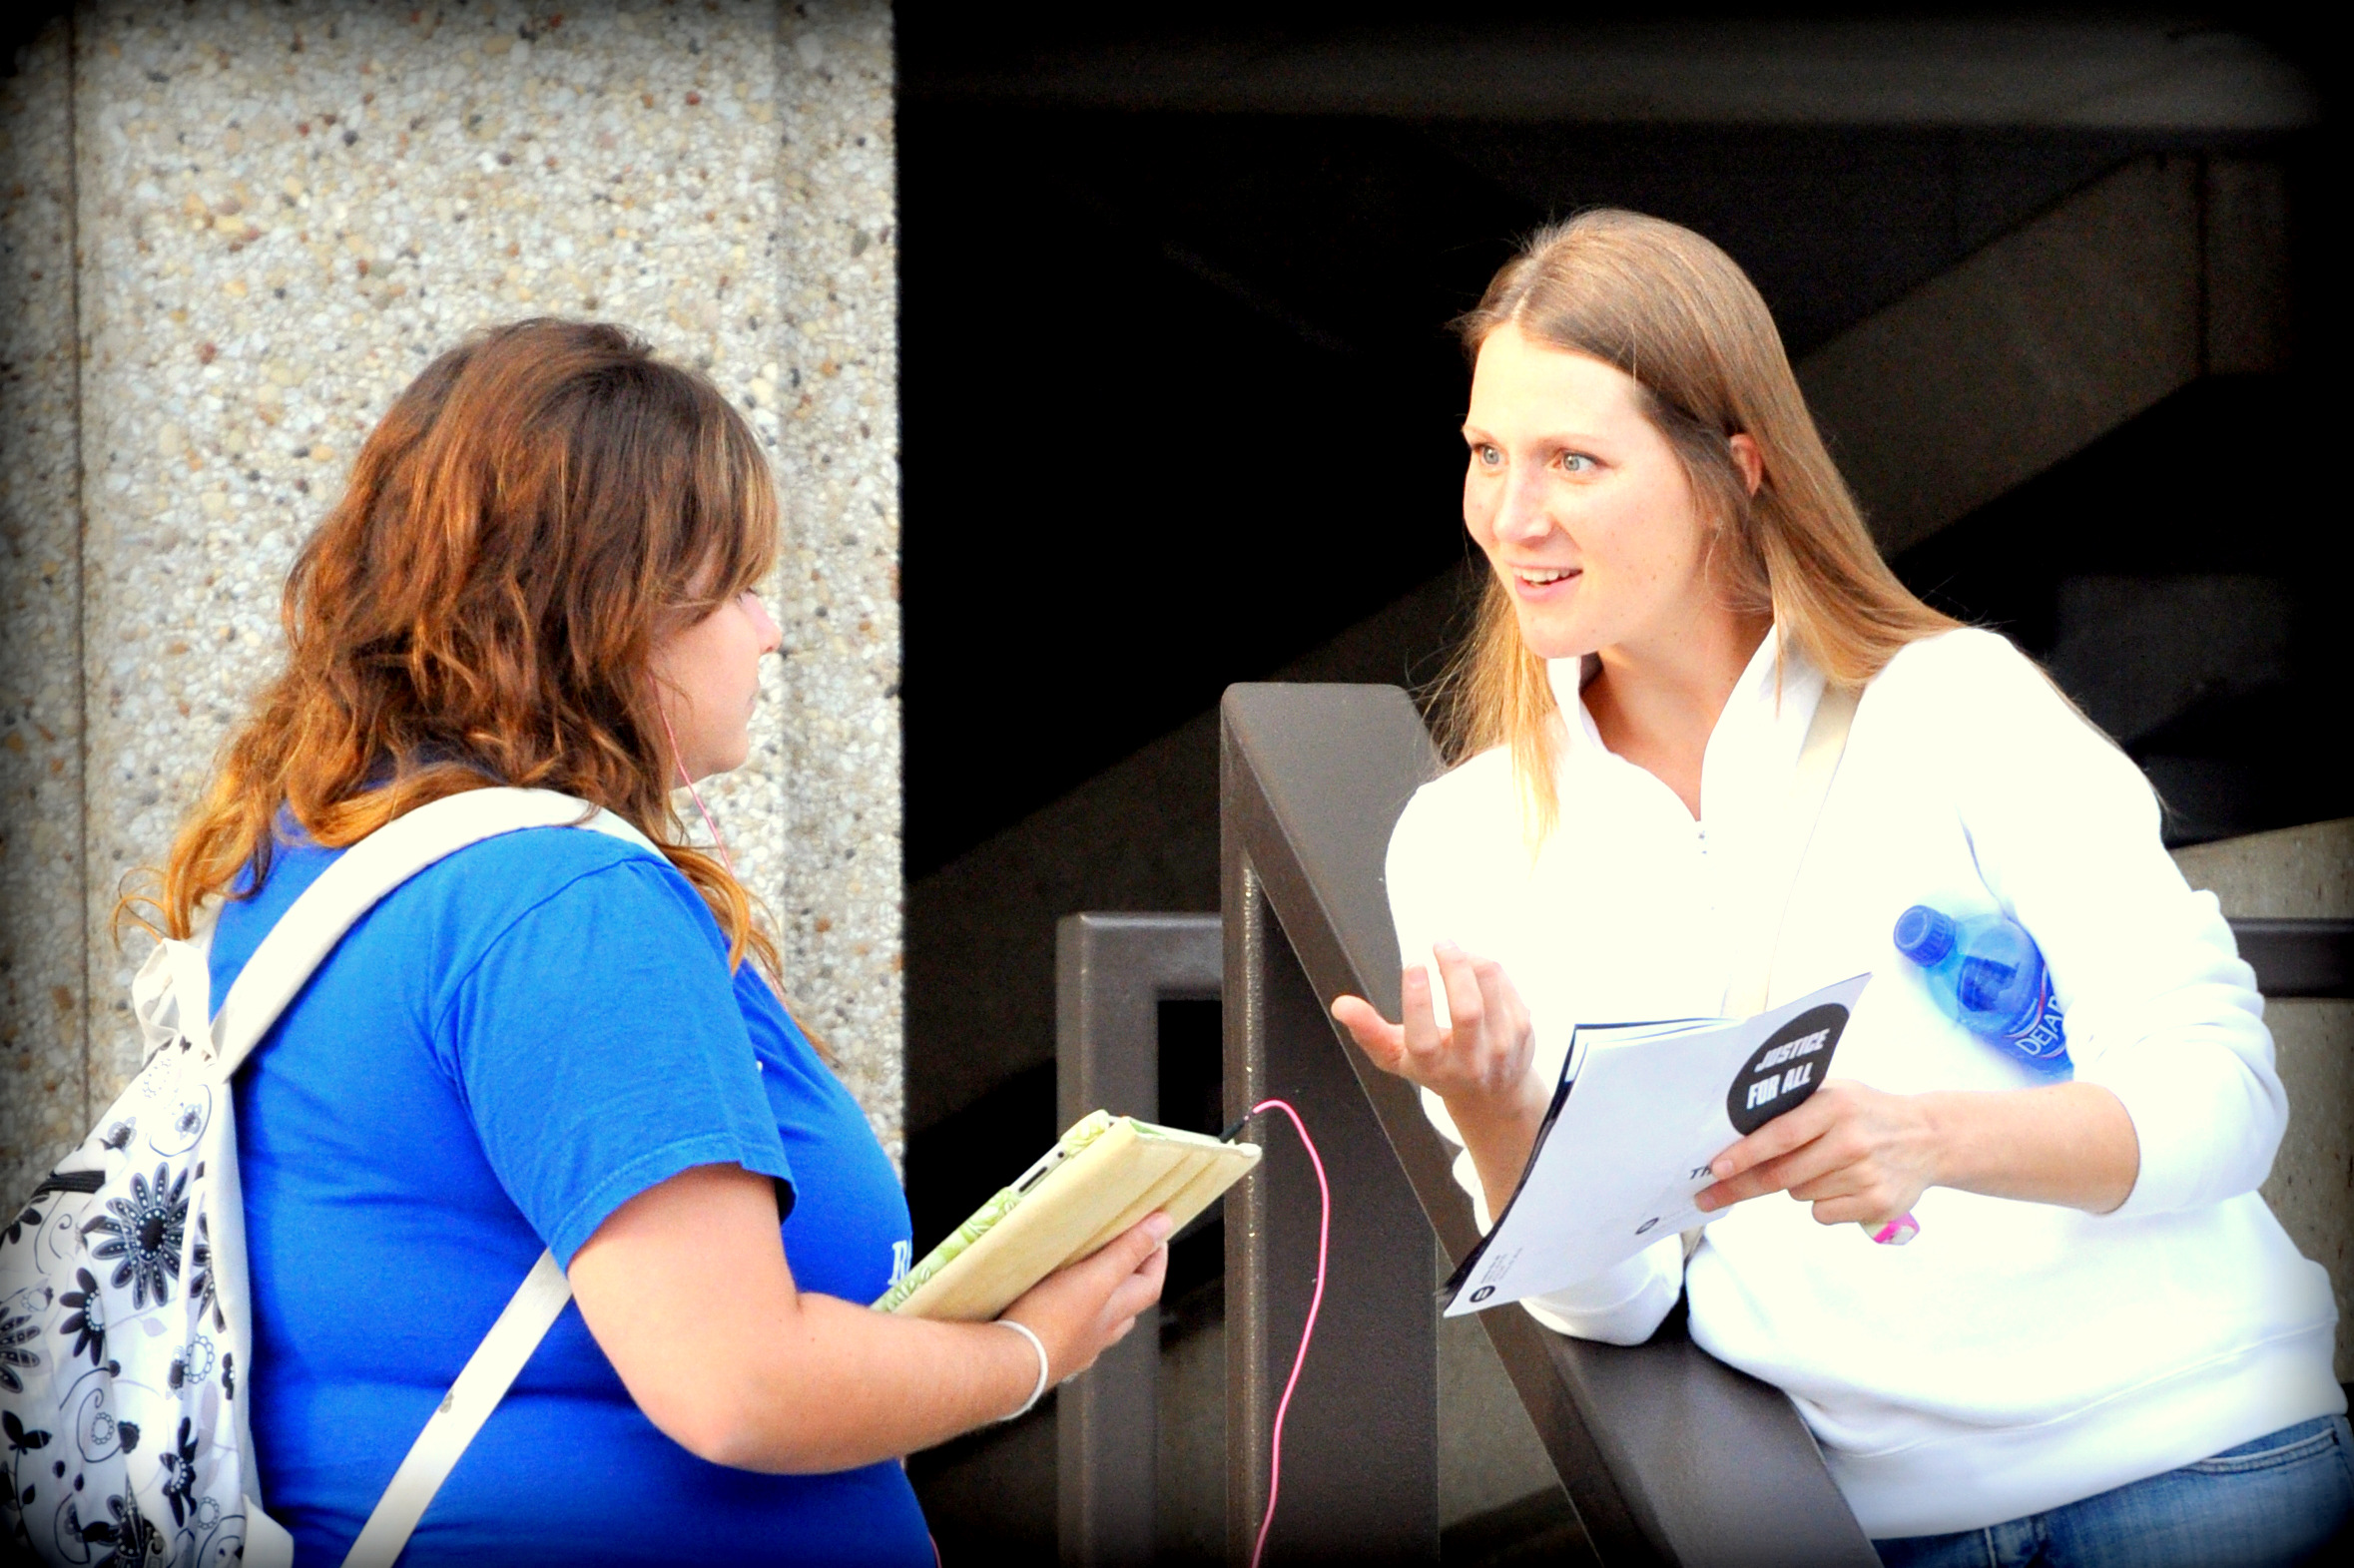 Rachelle interacts with a student at the University of Kansas in 2012.